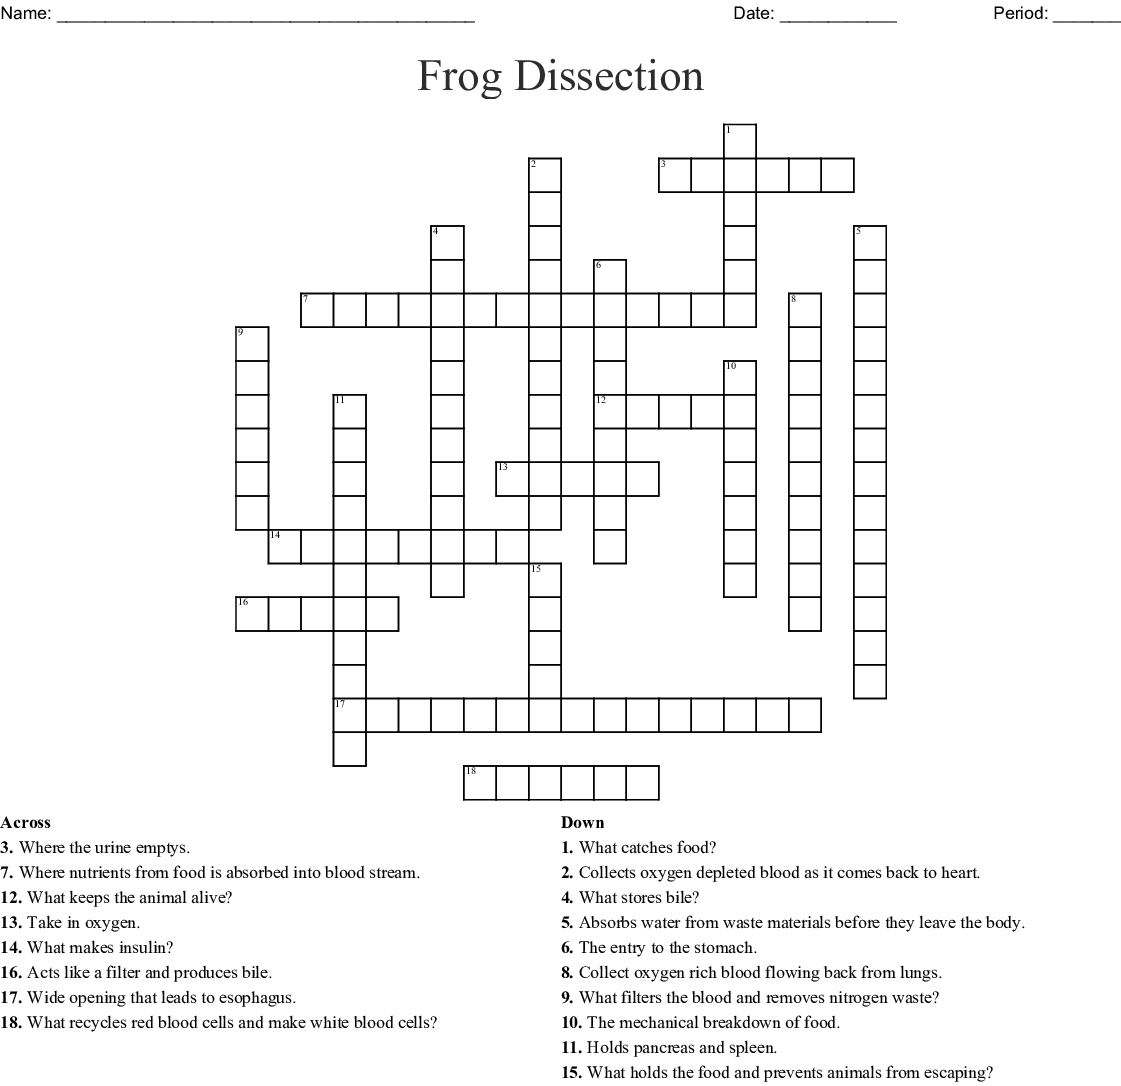 Frog Dissection Worksheet